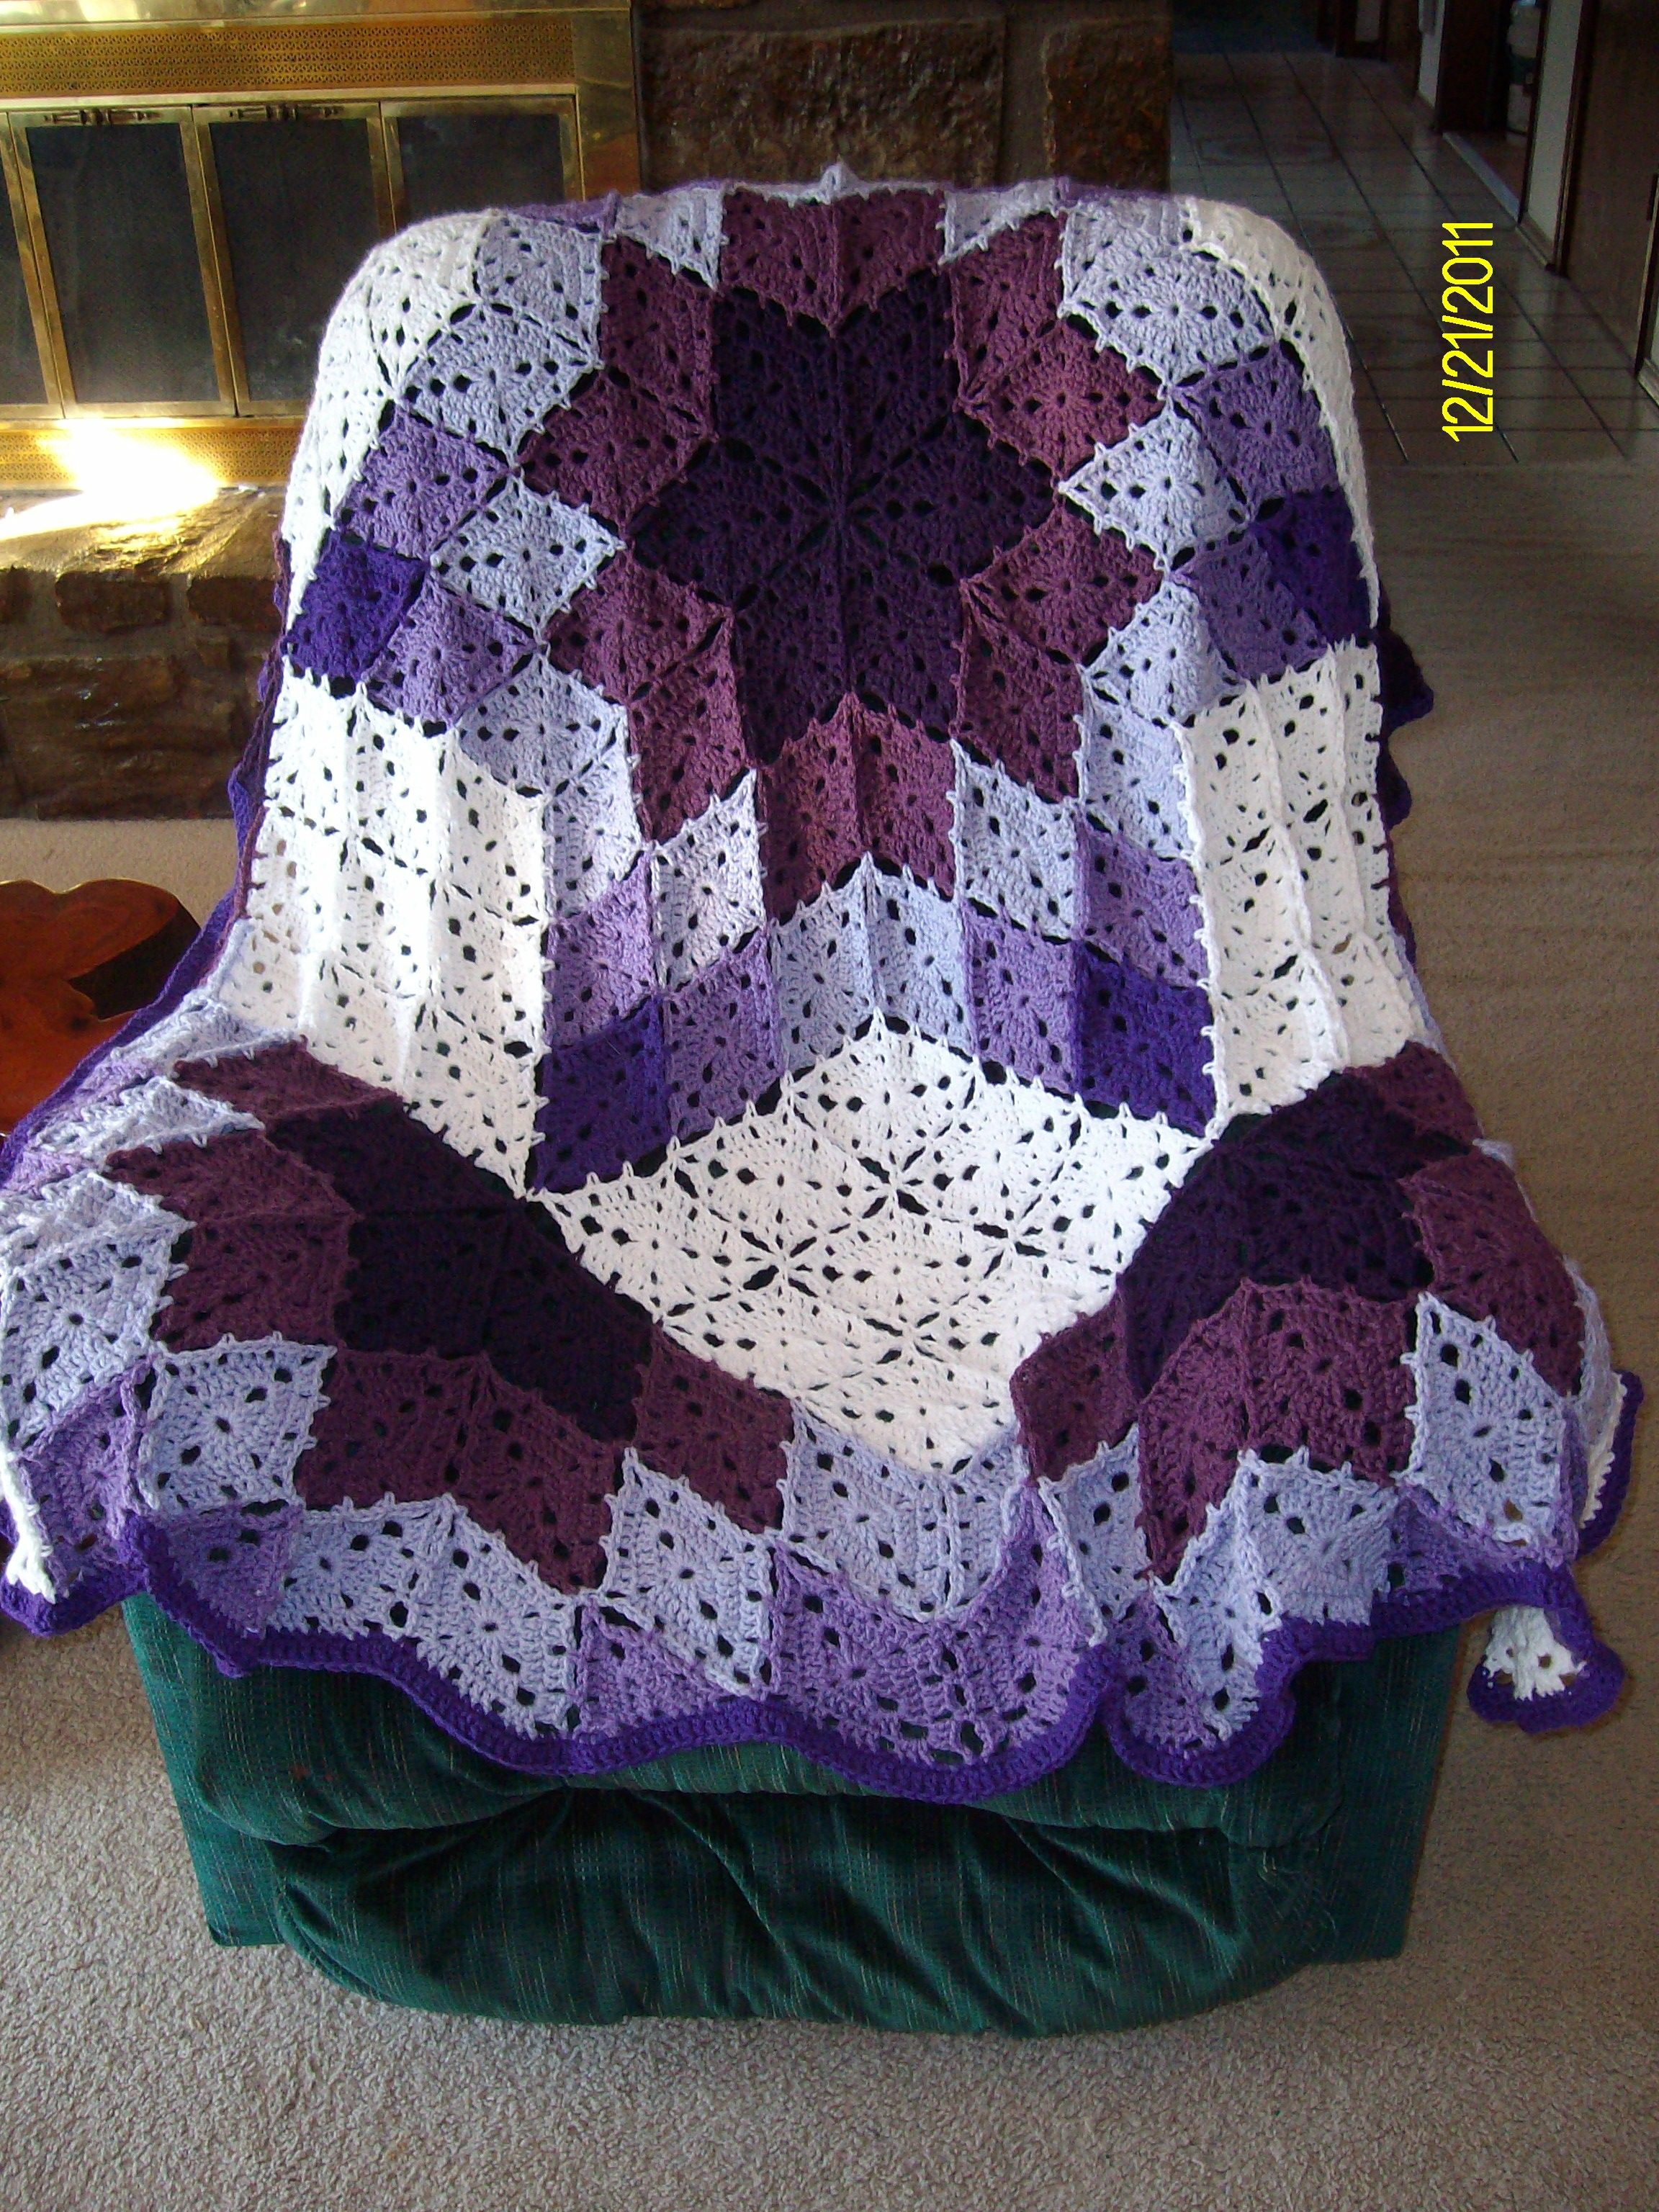 Prairie star afghan made for shawna palmer in 2011 completed prairie star afghan made for shawna palmer in 2011 bankloansurffo Image collections